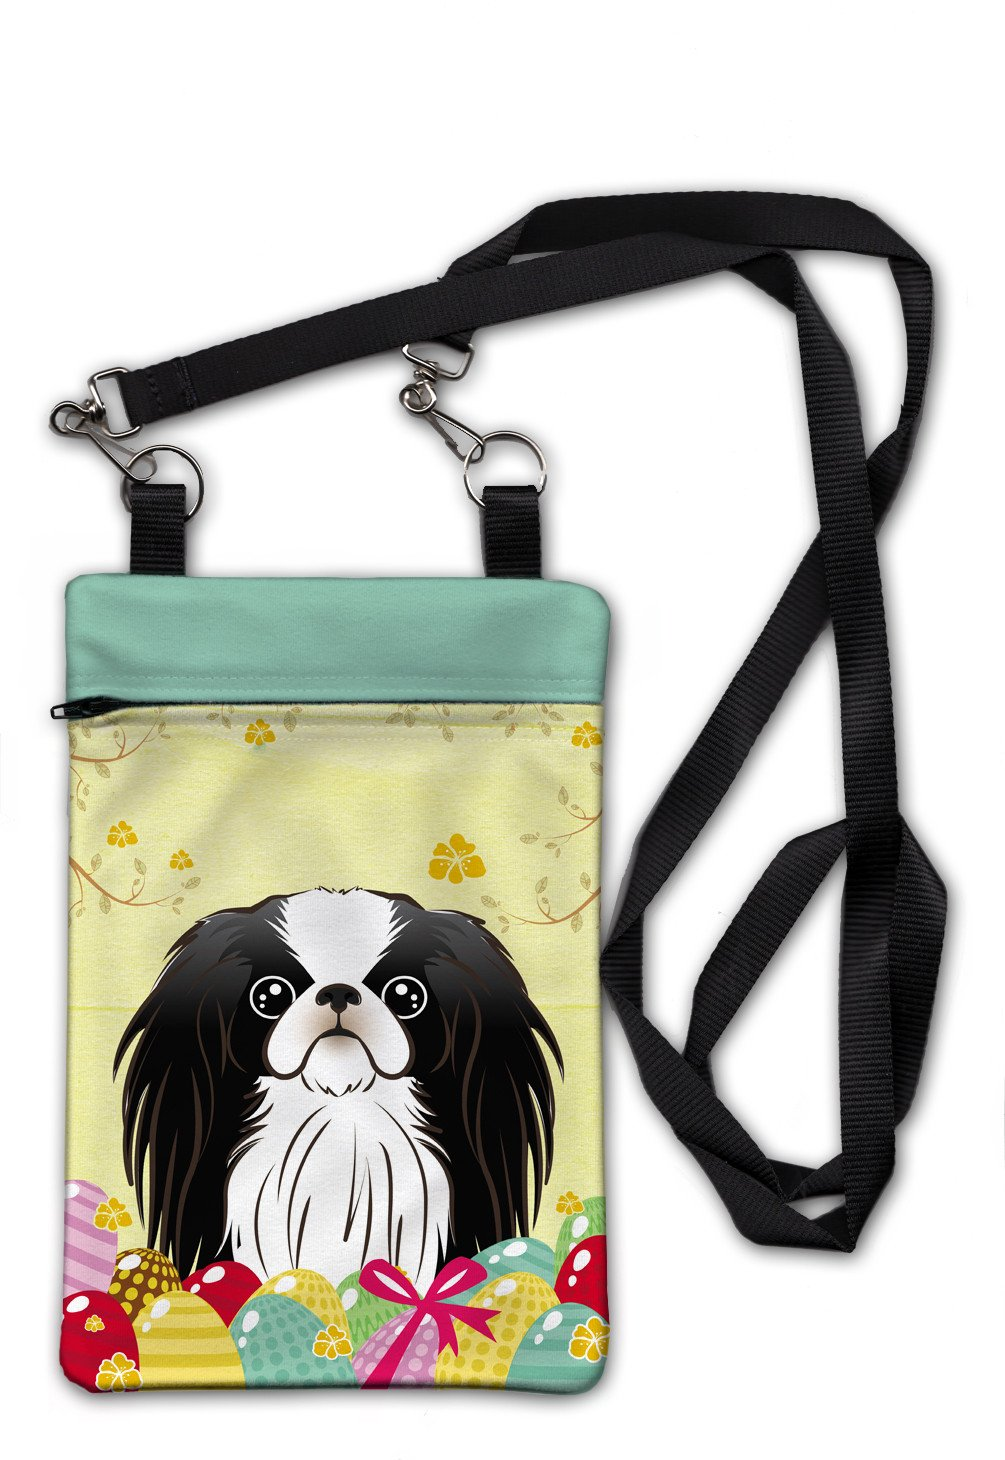 Japanese Chin Easter Egg Hunt Crossbody Bag Purse BB1912OBDY by Caroline's Treasures